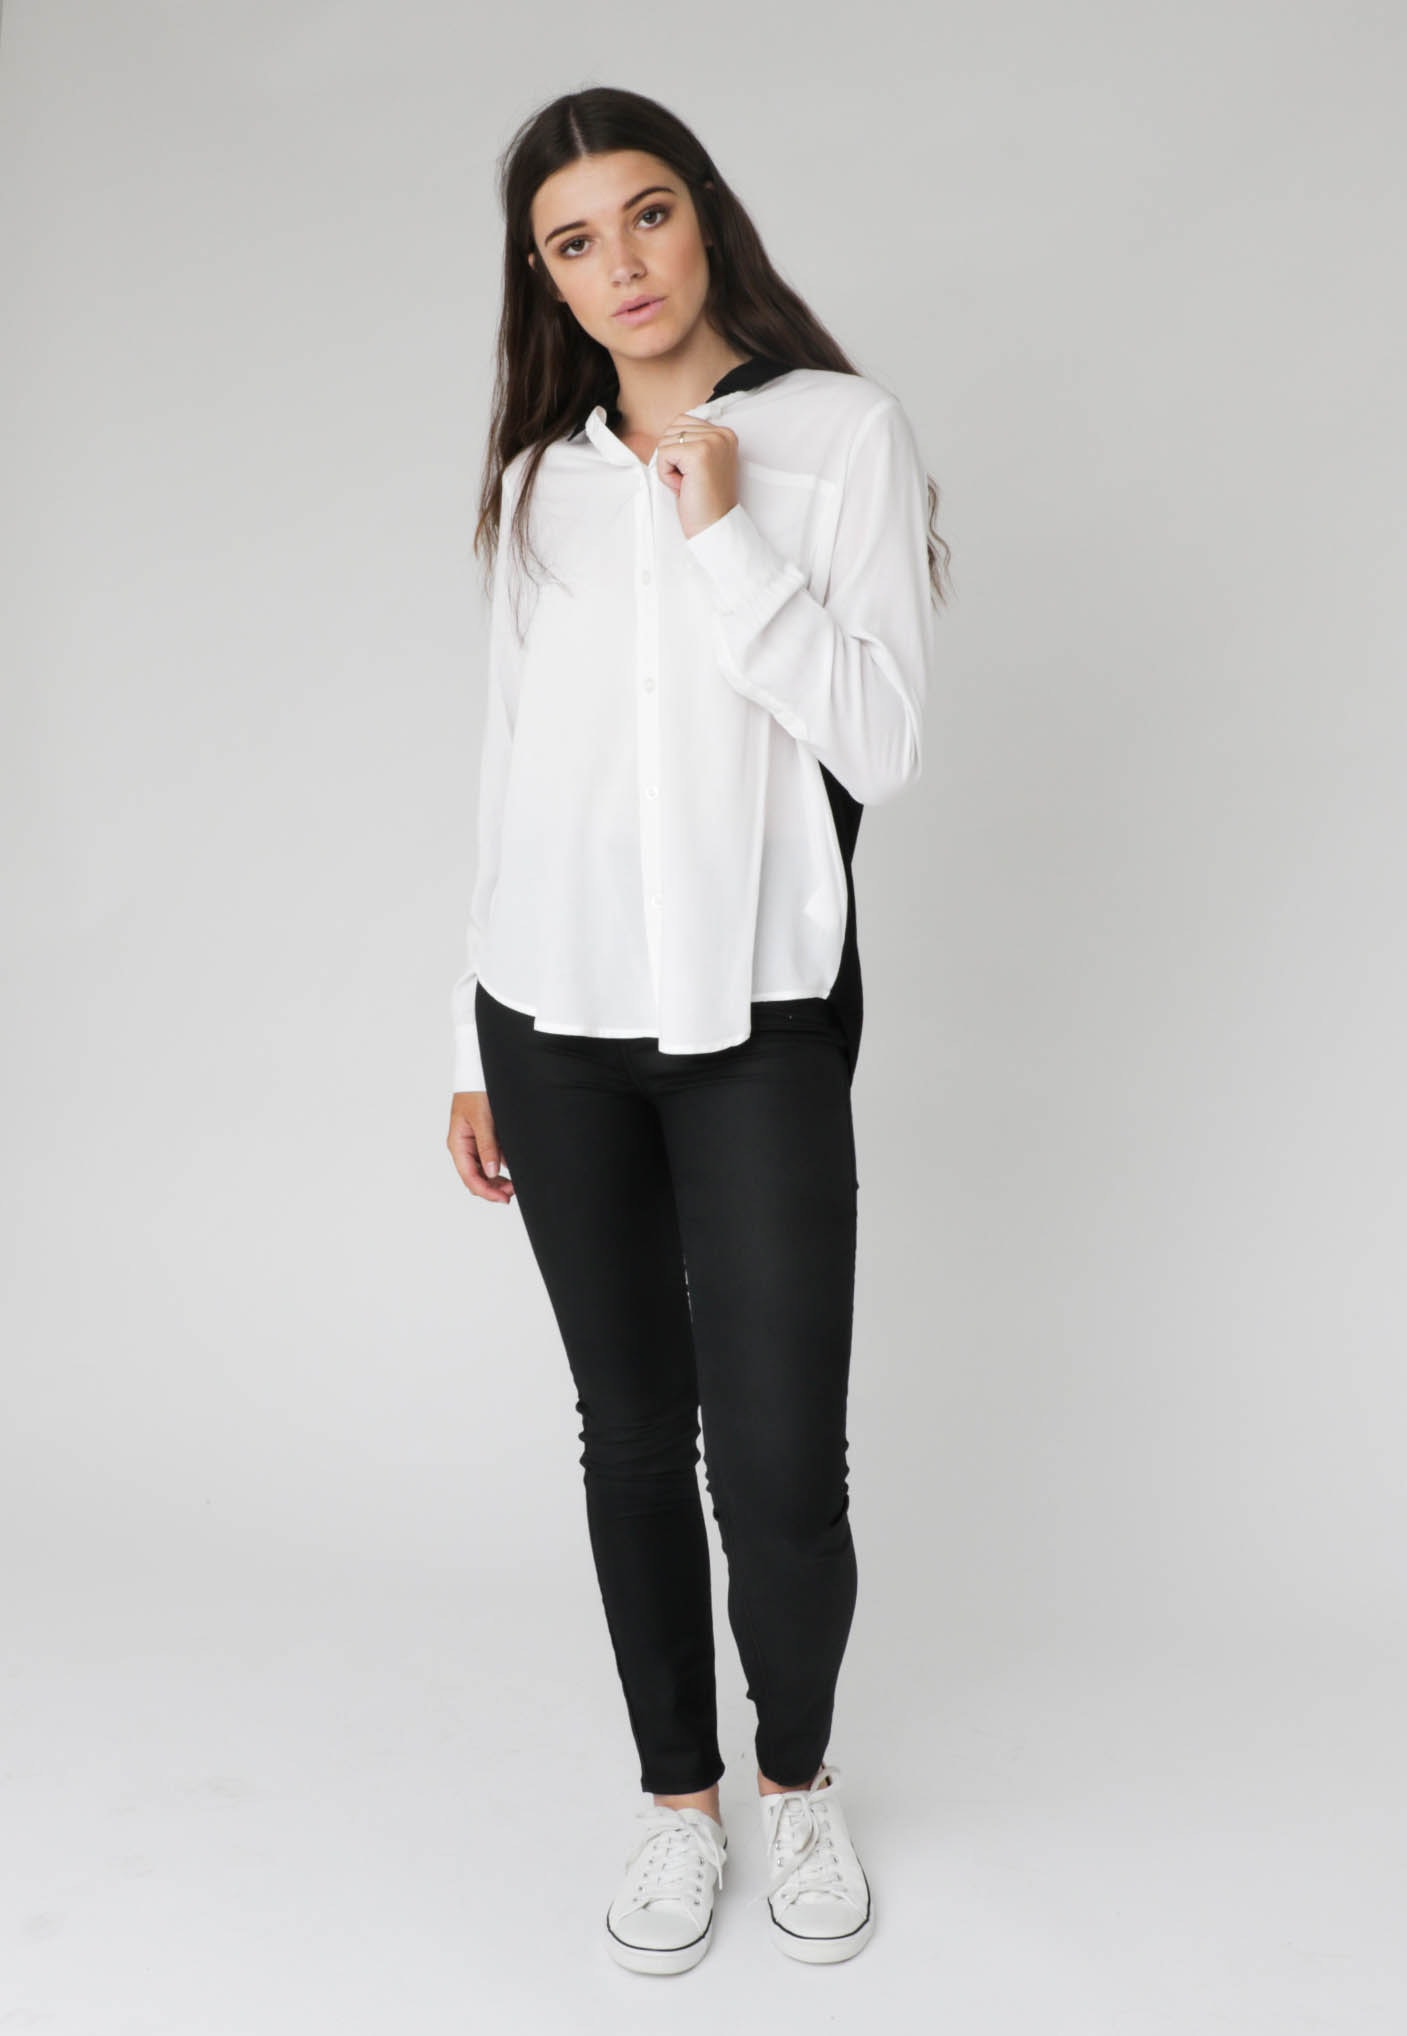 All About Eve - Straight Down the Line Shirt - White & Black